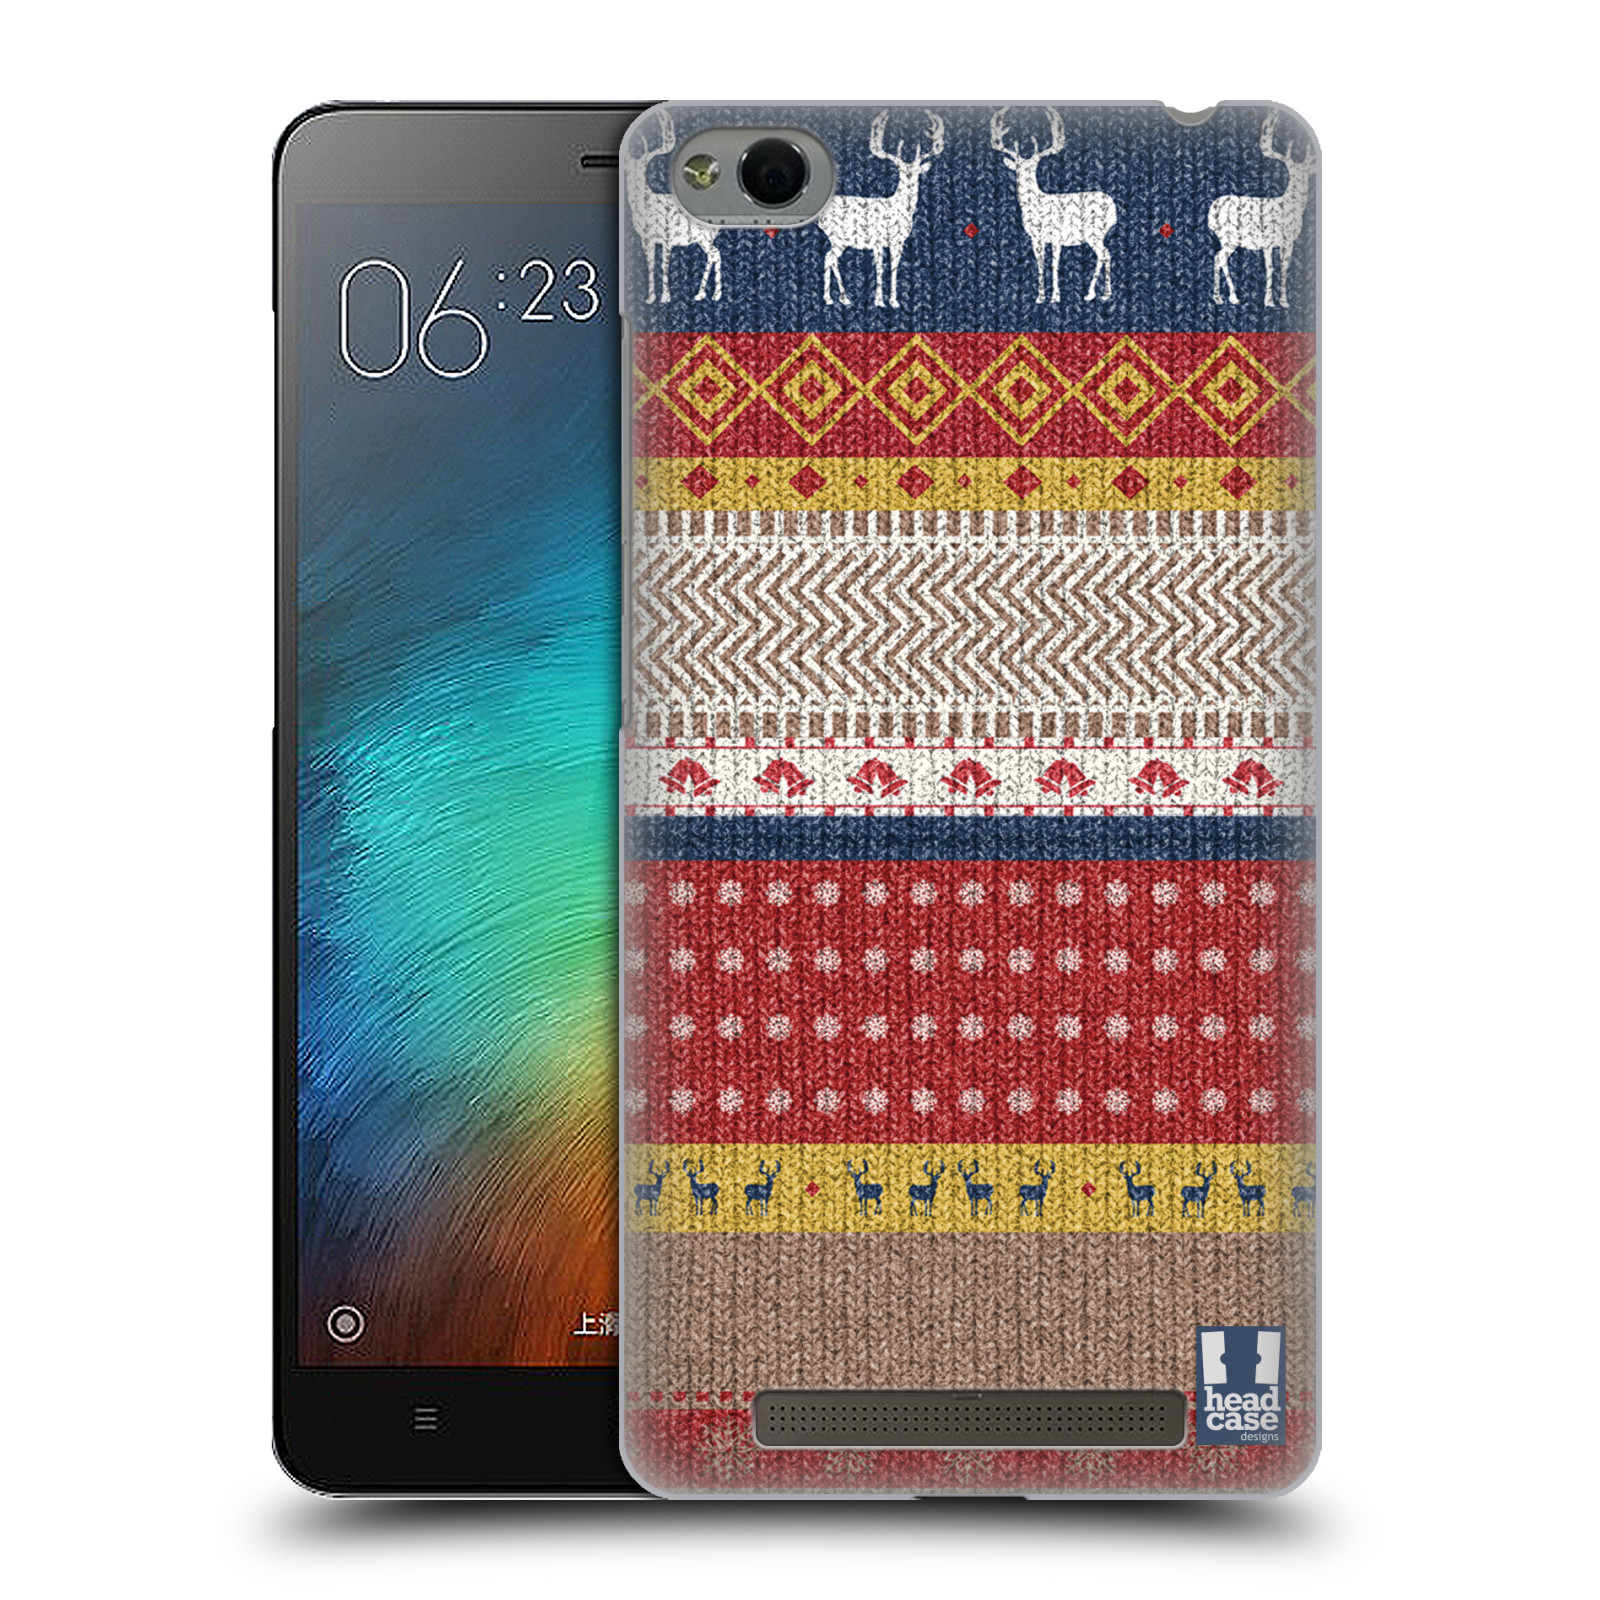 HEAD CASE DESIGNS KNITTED CHRISTMAS HARD BACK CASE FOR XIAOMI PHONES